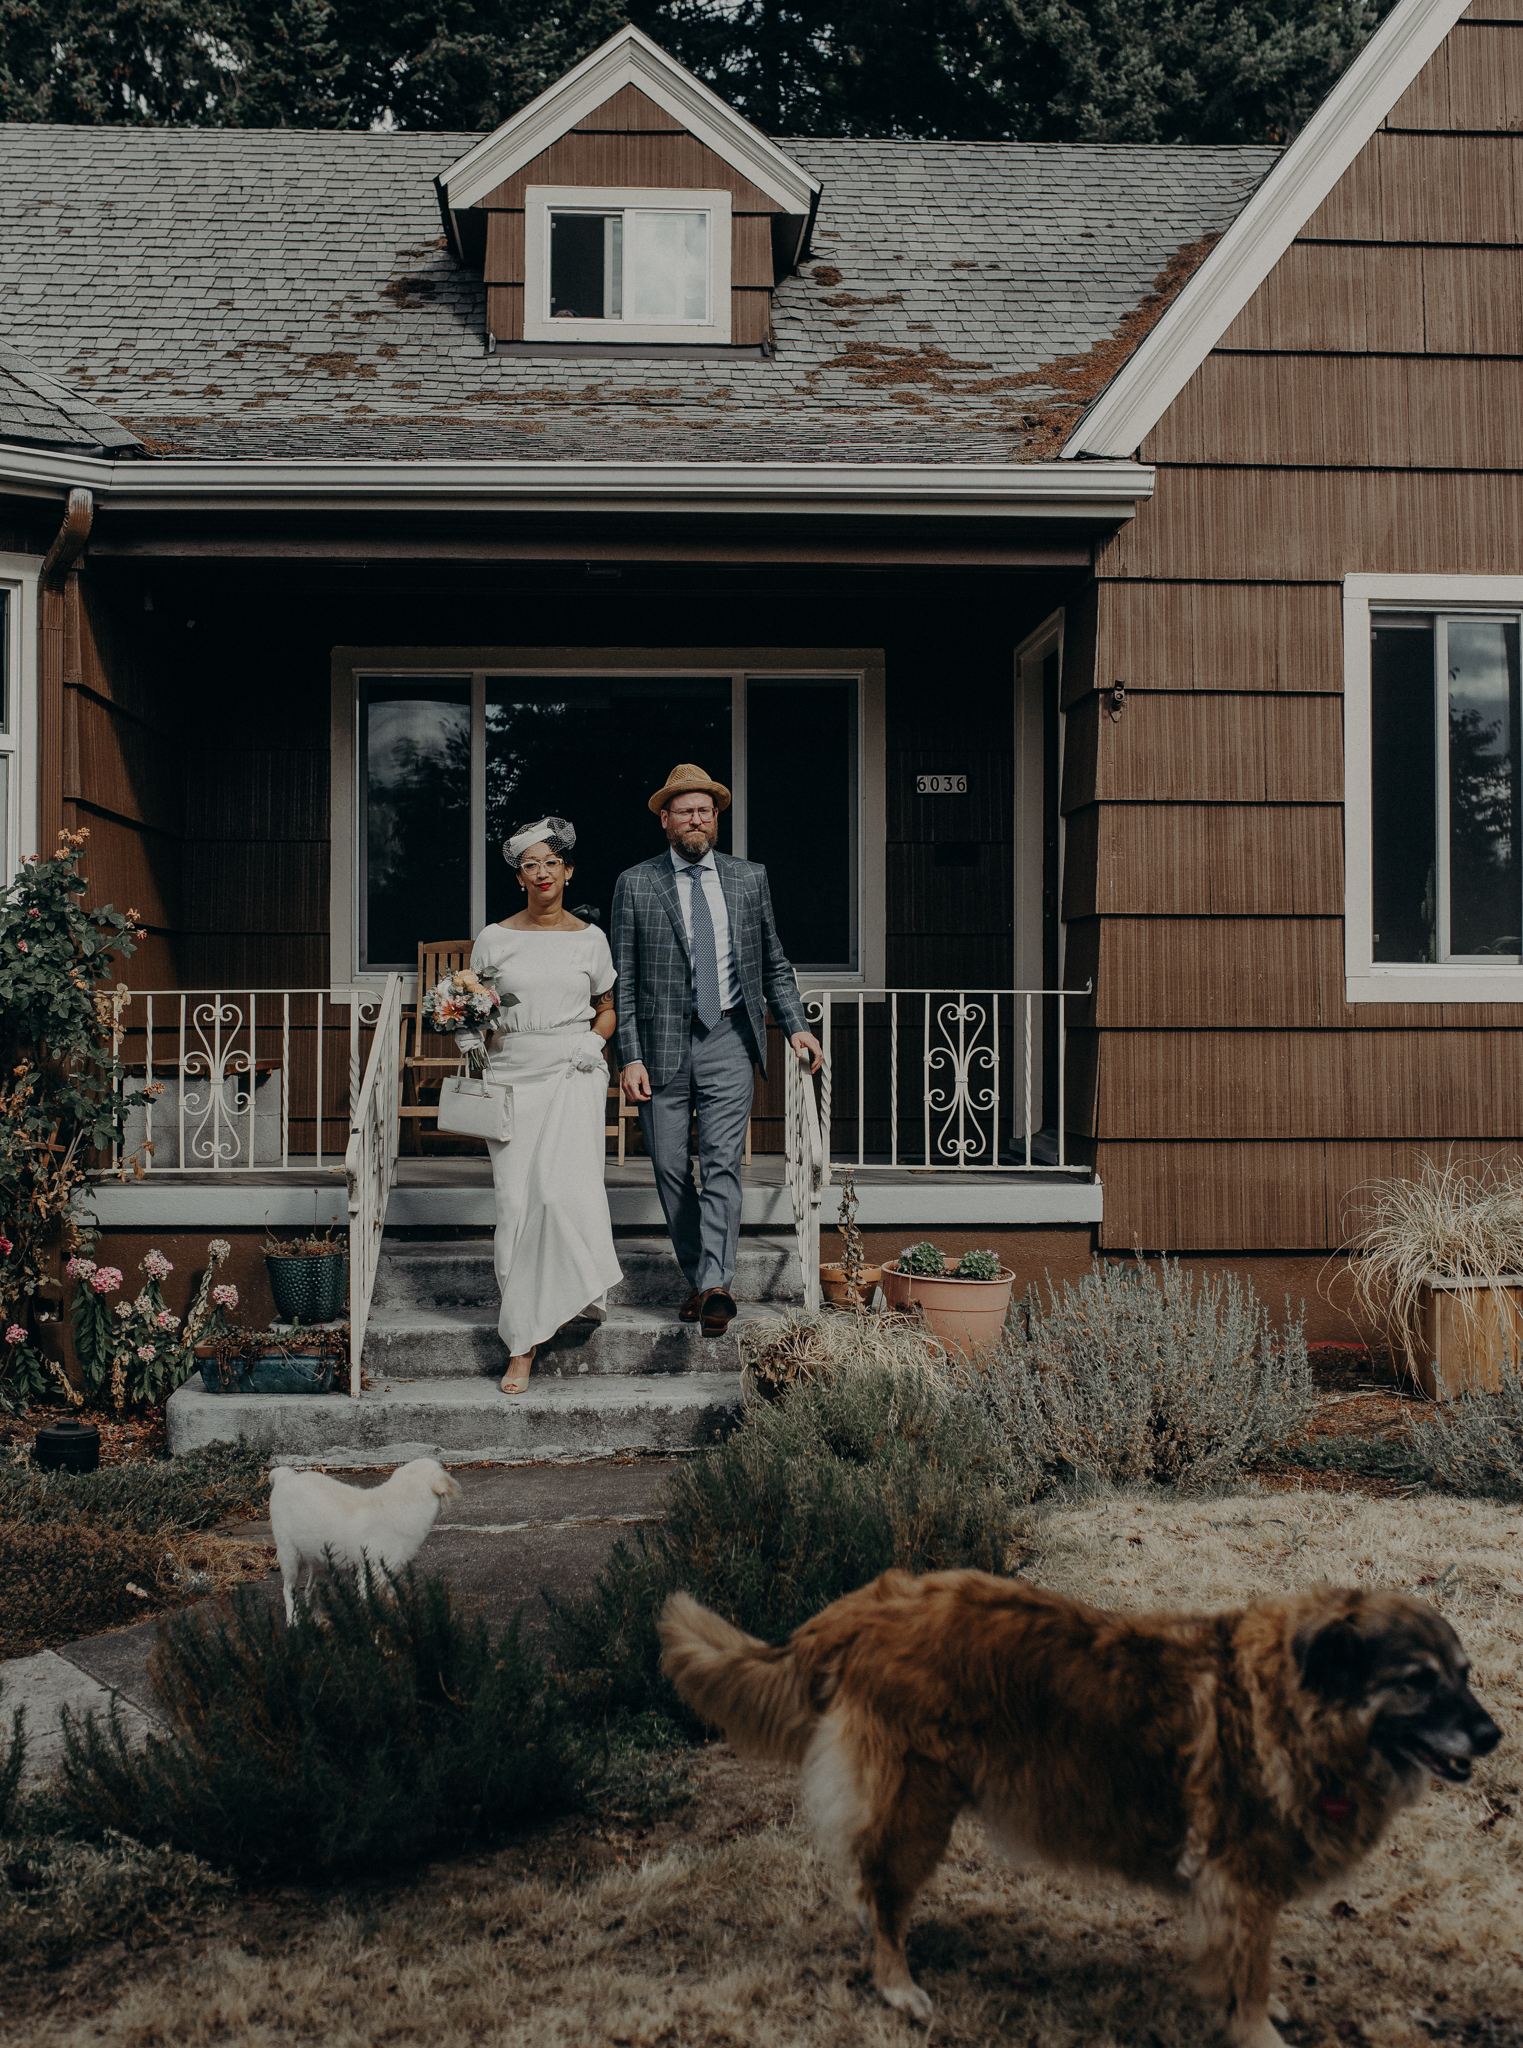 Los Angeles Wedding Photographer - Portland Elopement Photographer - IsaiahAndTaylor.com-059.jpg